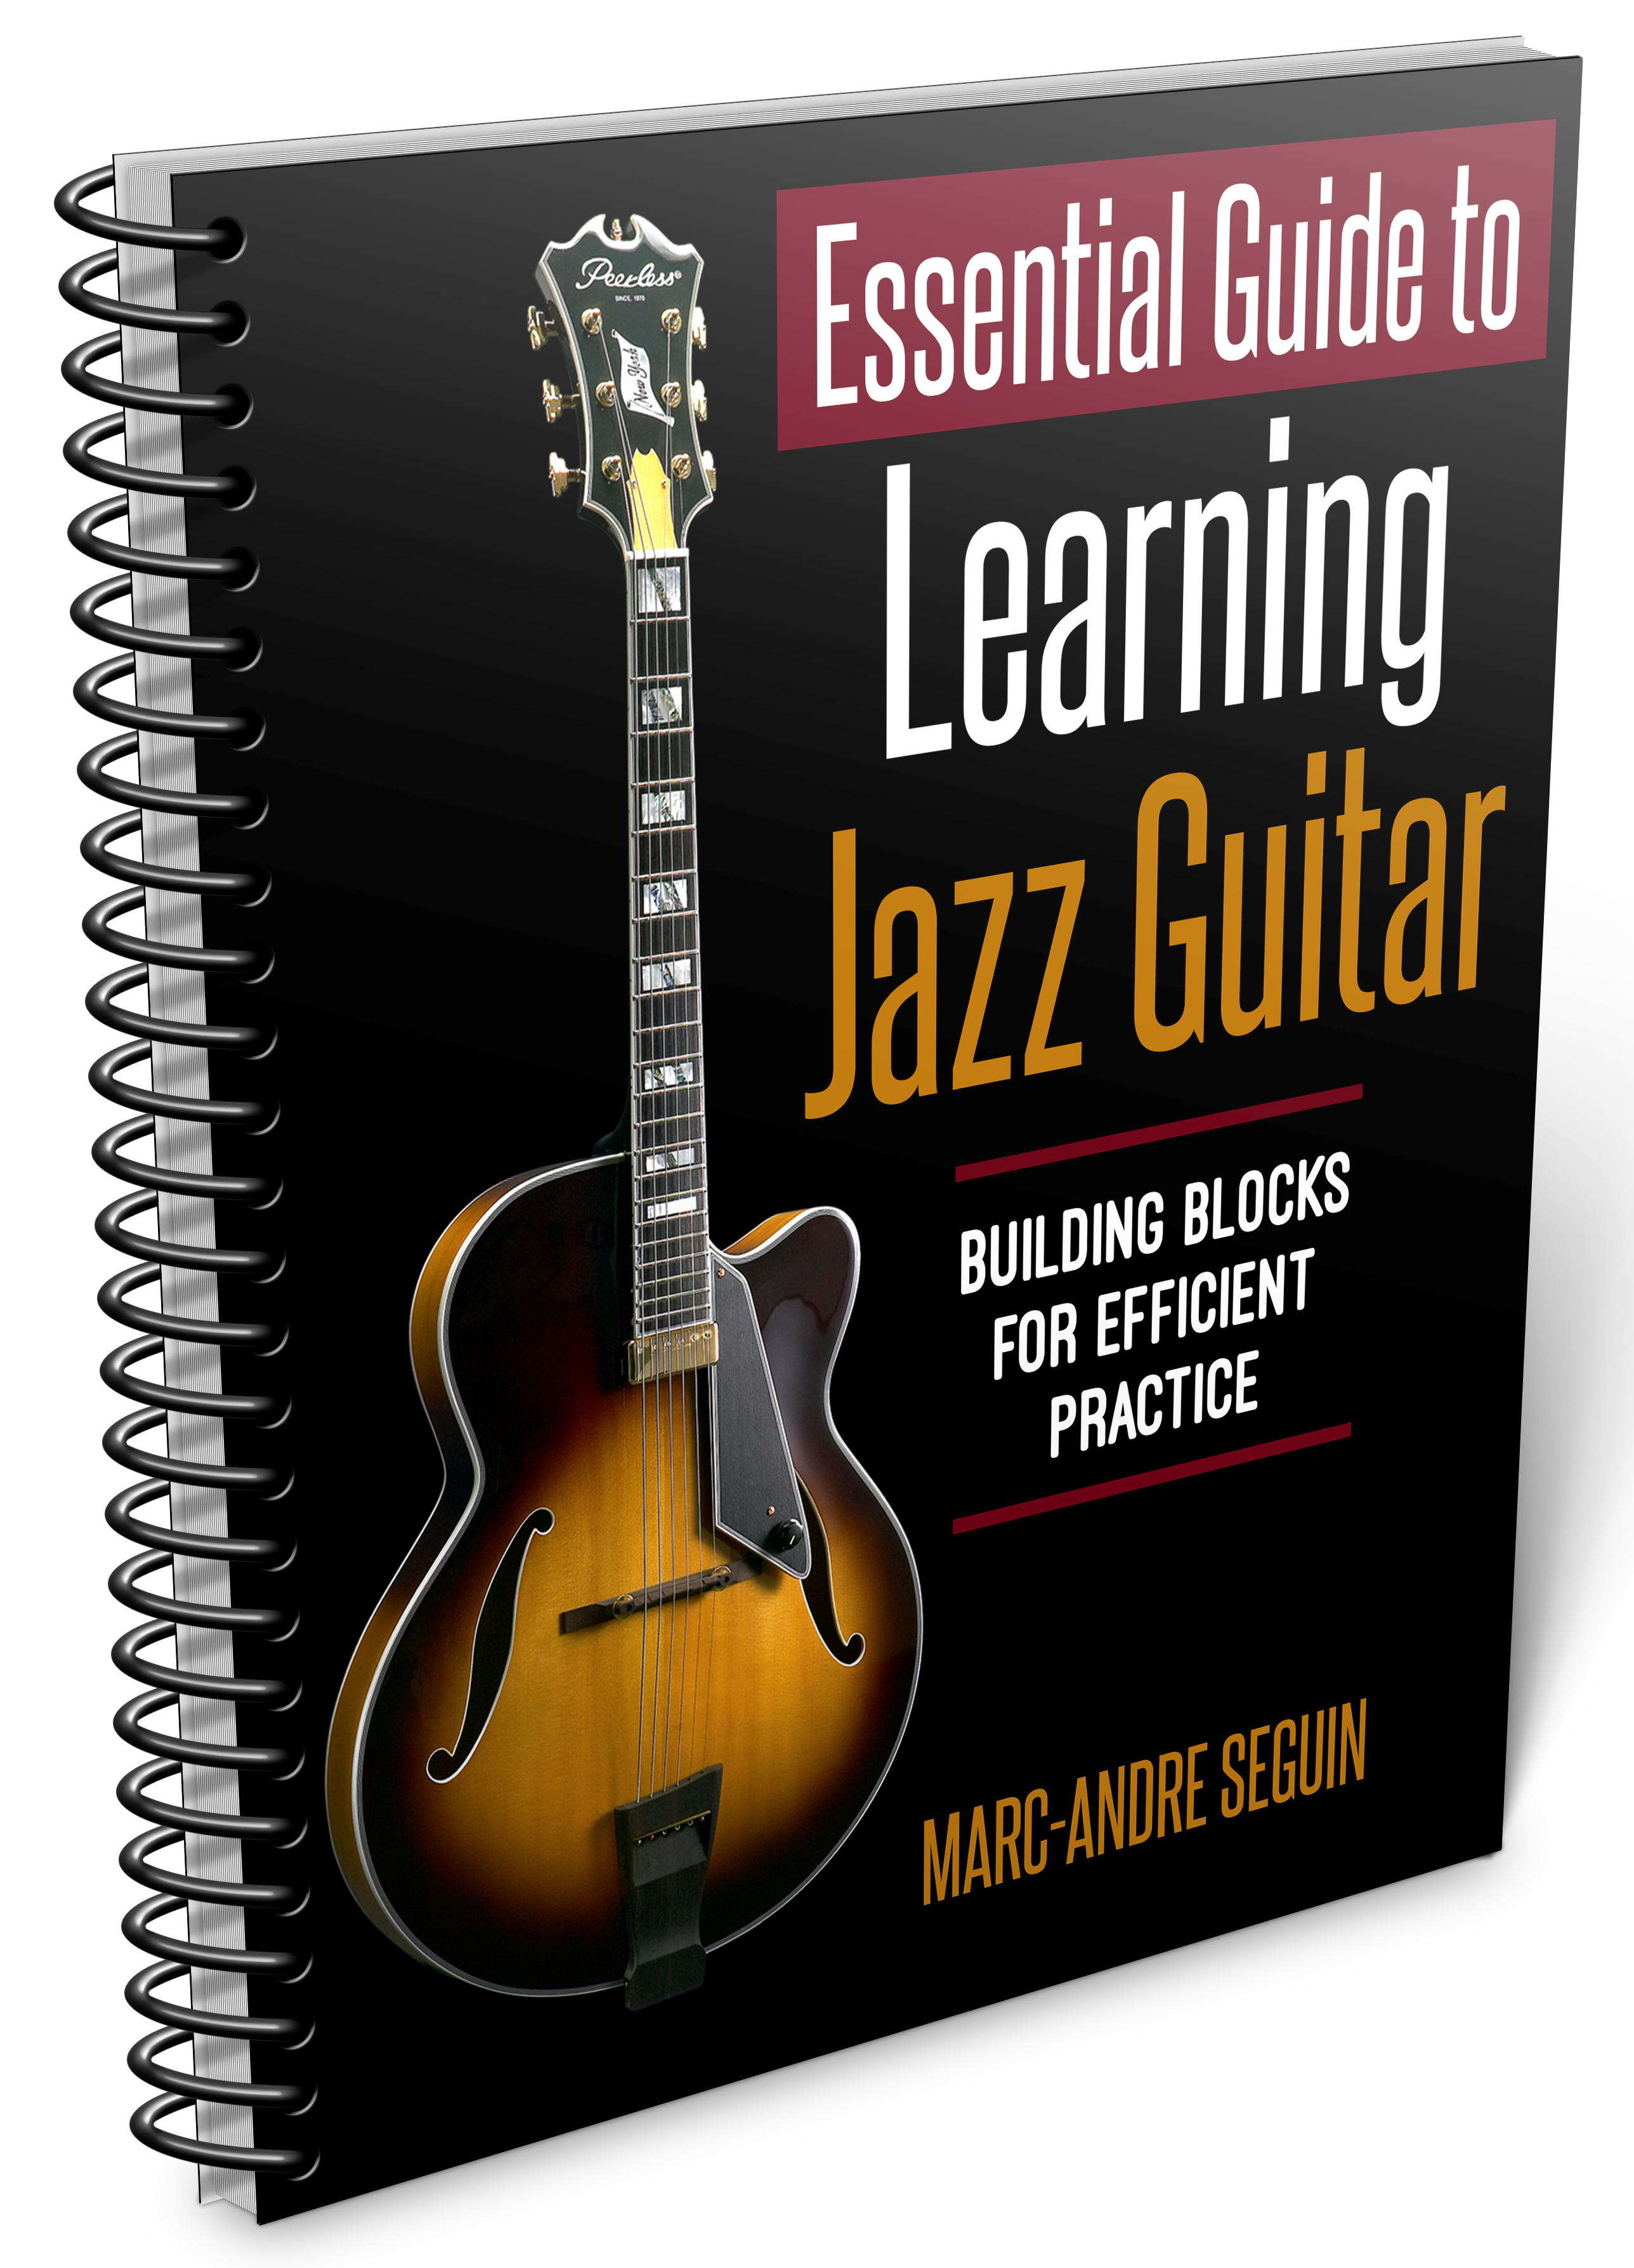 essential guide for learning jazz guitar